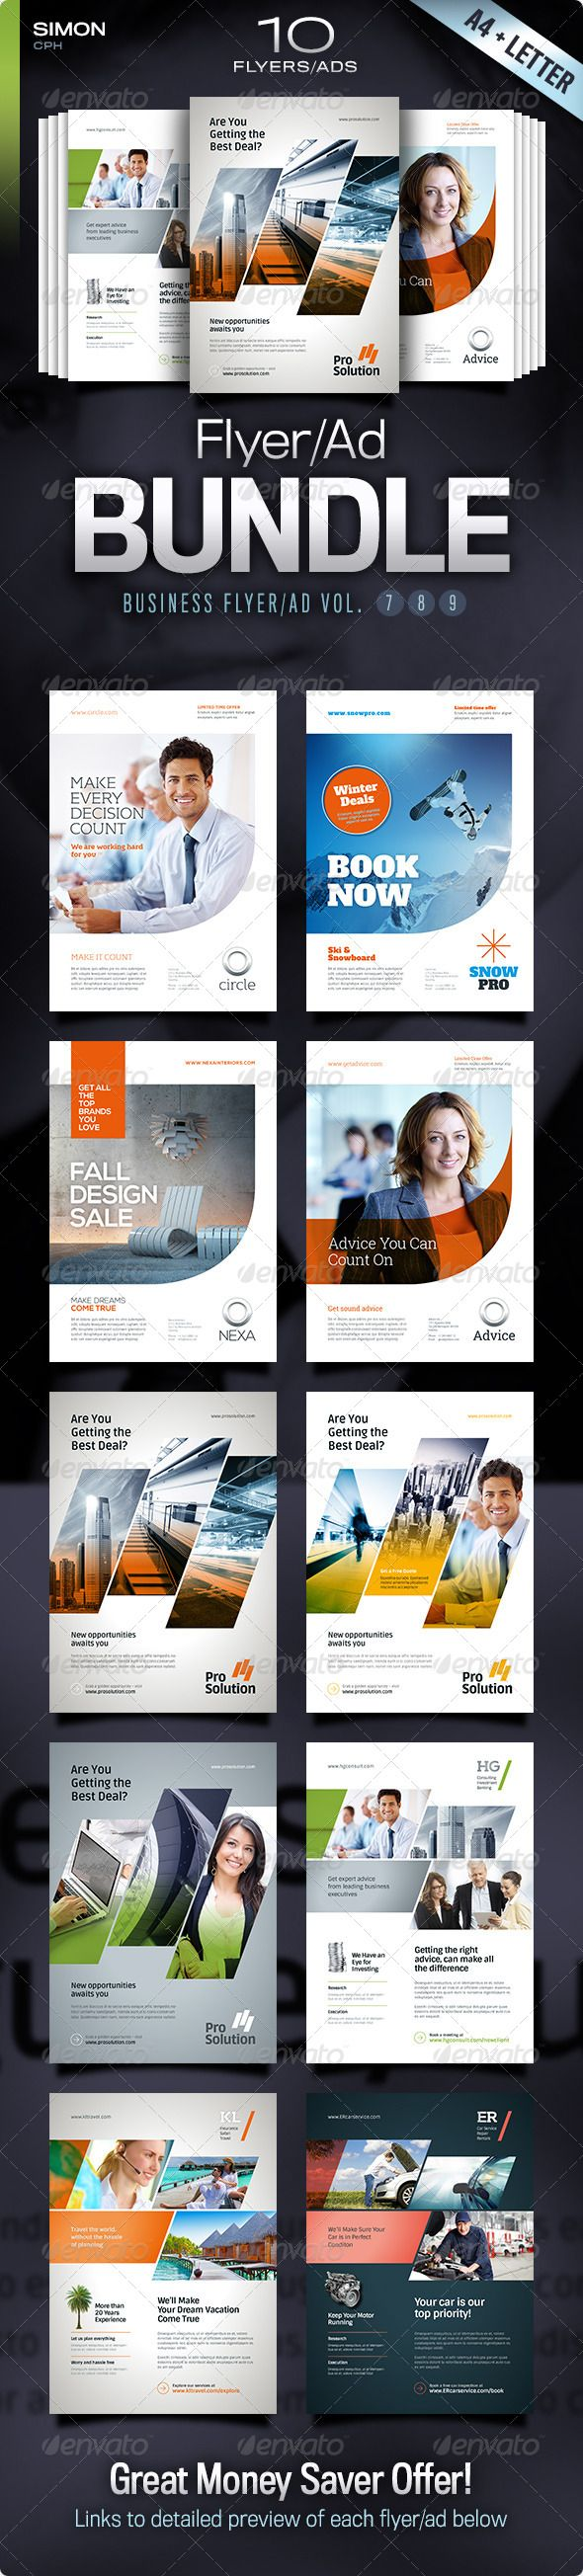 Buy Business Flyer Ad Bundle Vol Business Flyer Ad Bundle Vol 10 professional business flyer ad templates – in both and Letter format